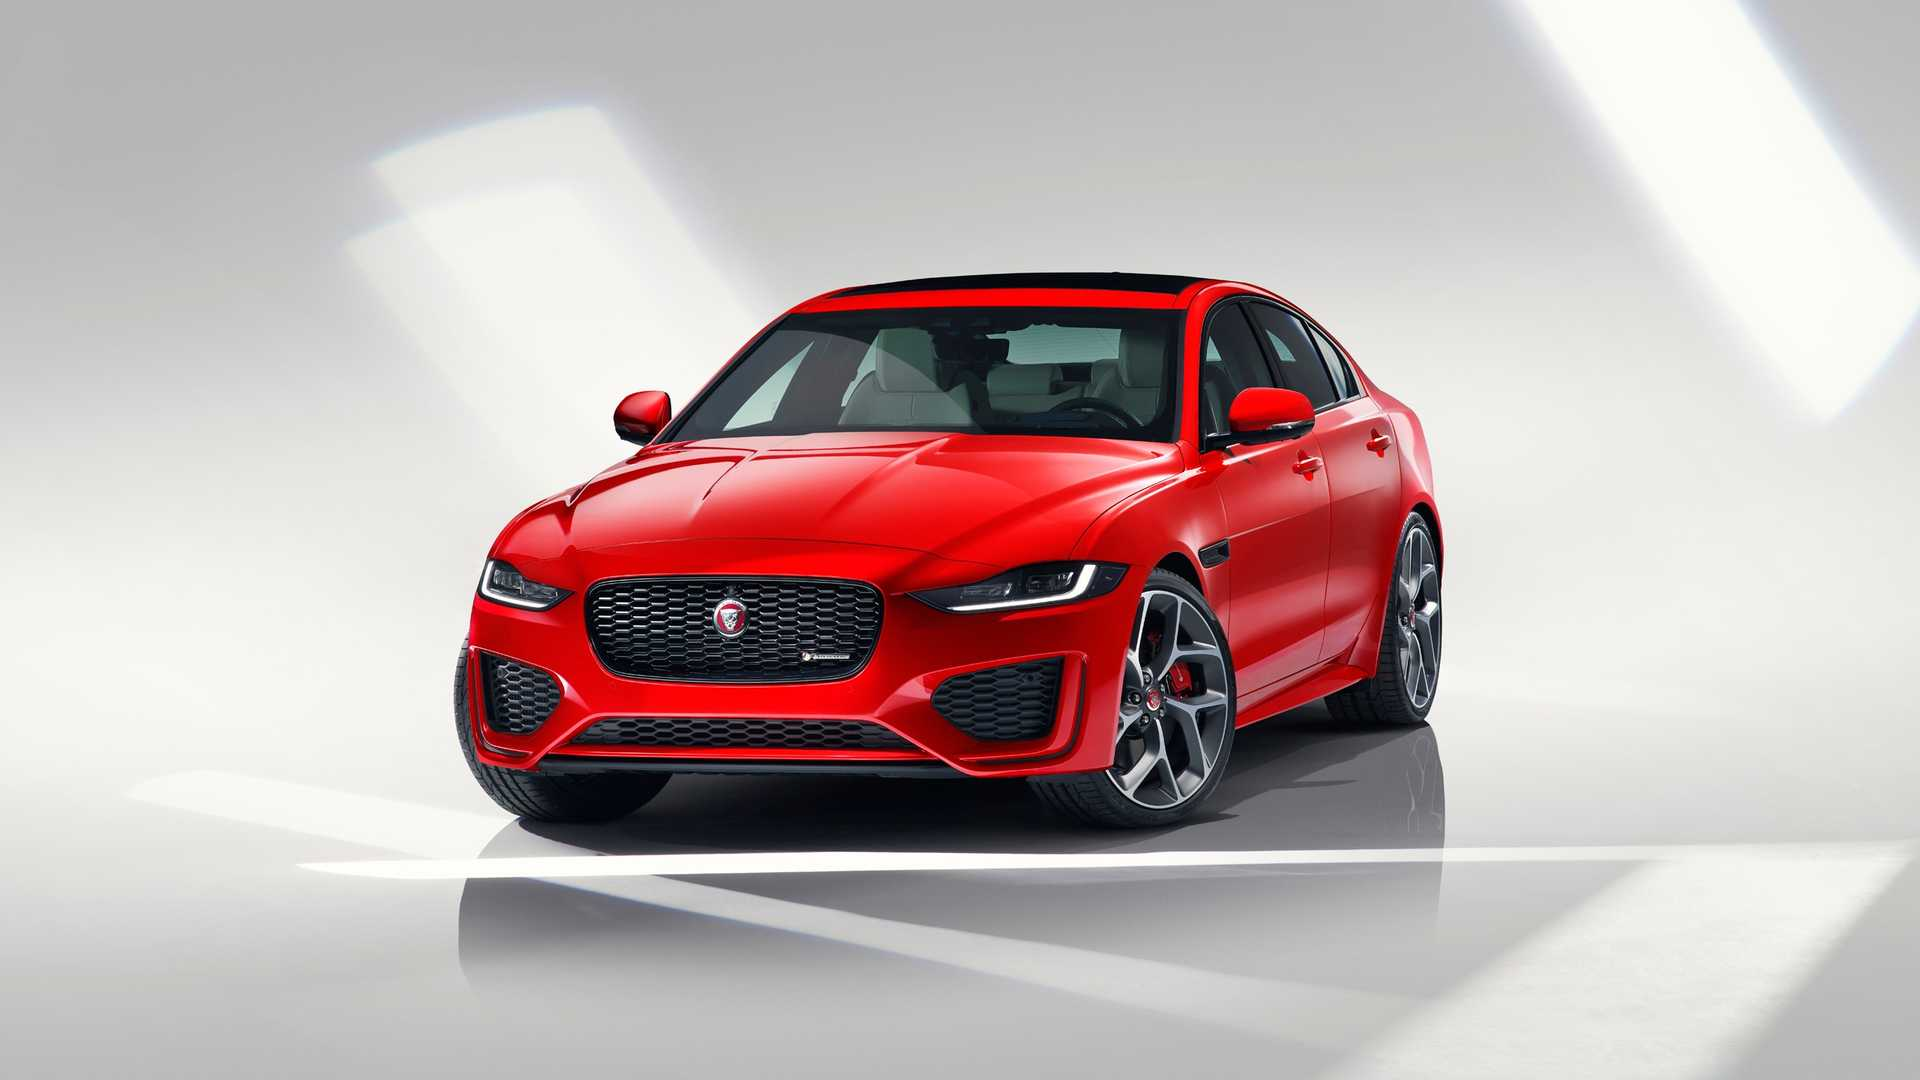 14 New 2020 Jaguar Xf Rs Style